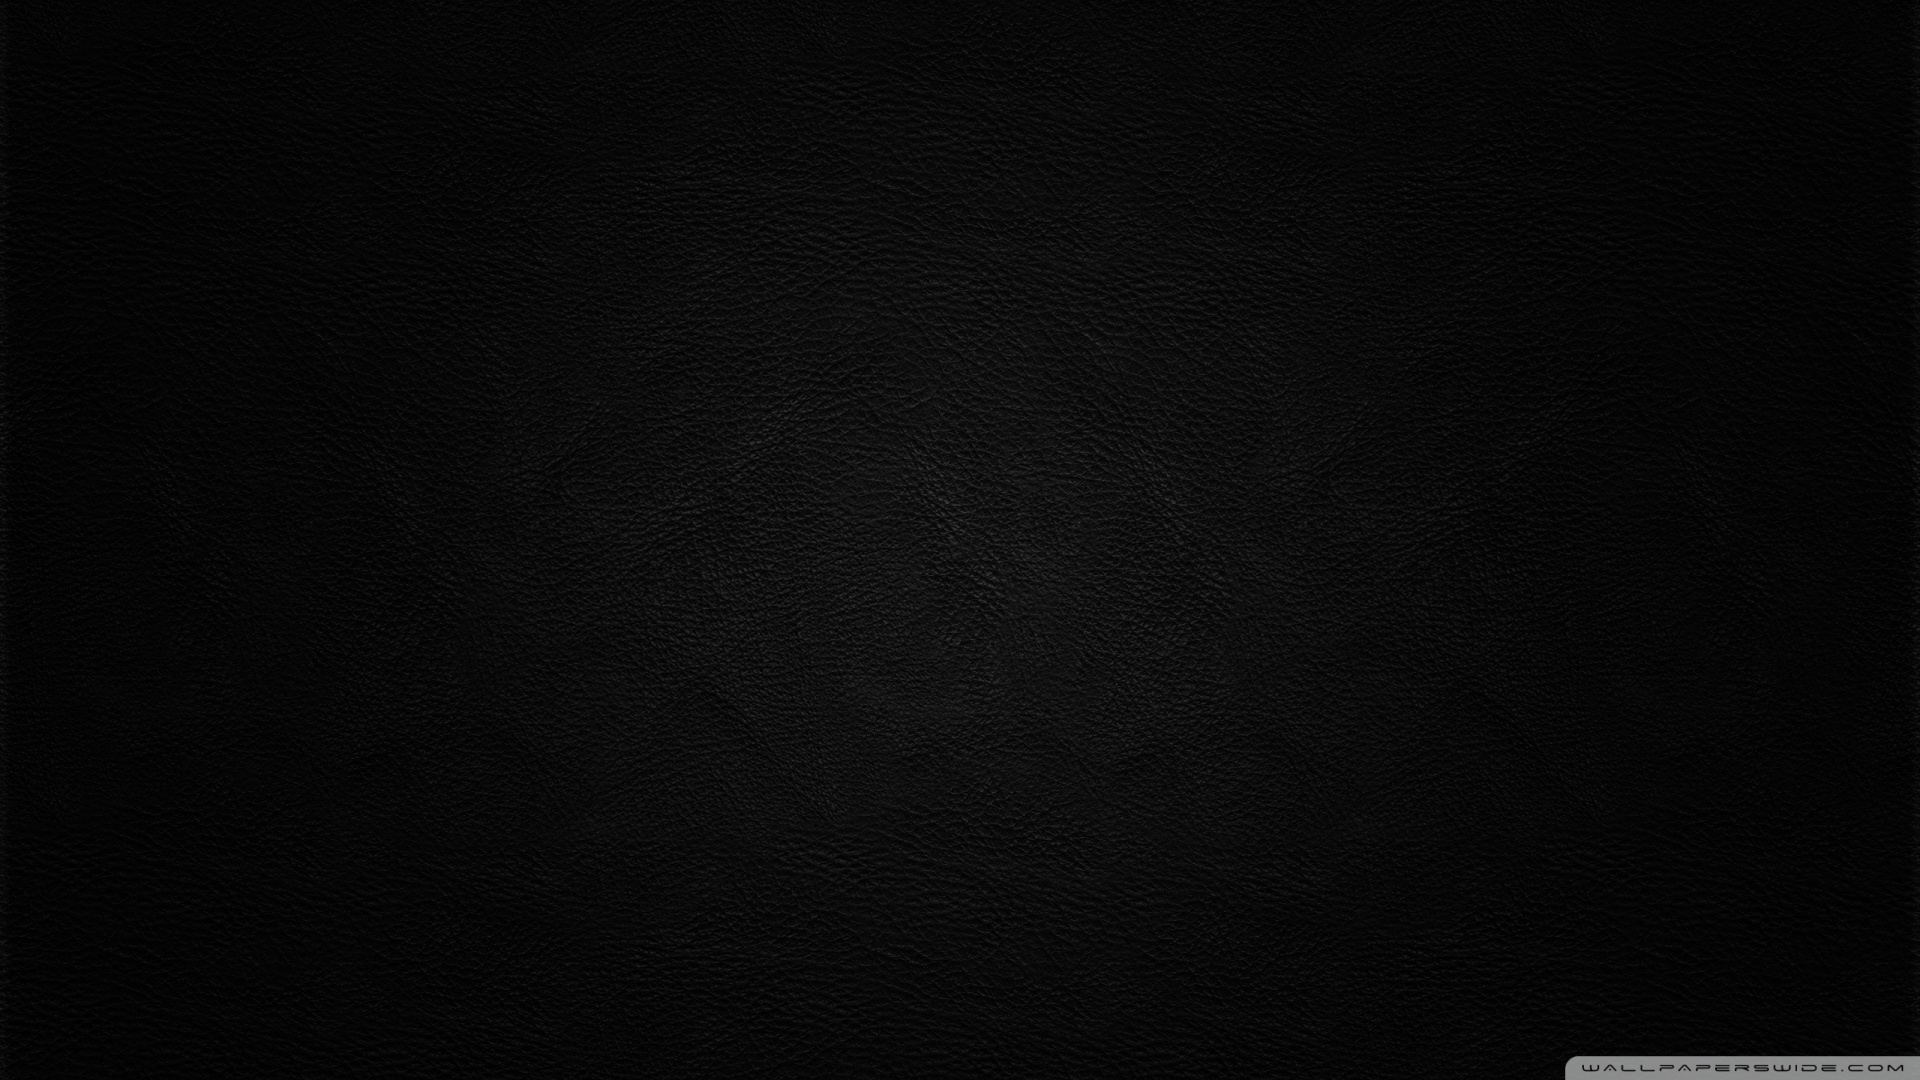 black background leather ❤ 4k hd desktop wallpaper for 4k ultra hd